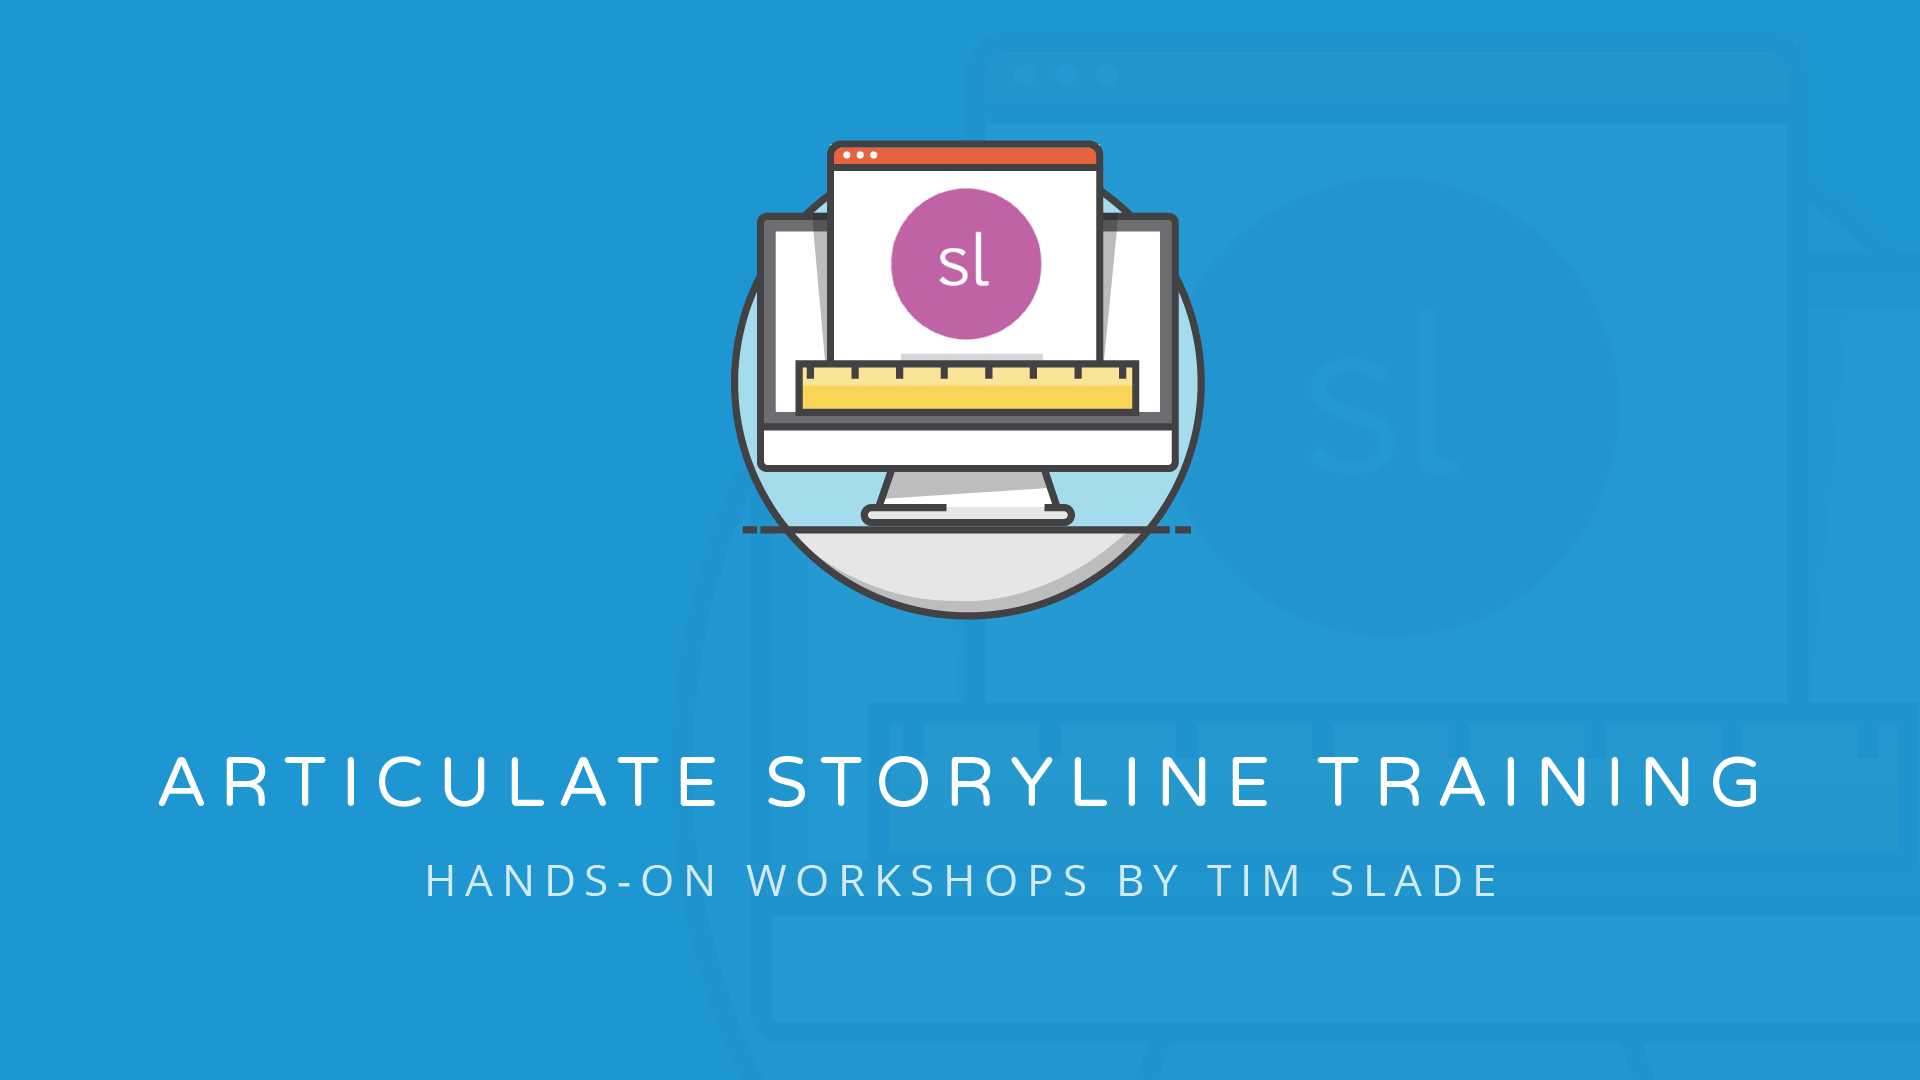 Hands-on Articulate Storyline Training Workshop by Tim Slade, Advanced Articulate Storyline Training, eLearning Workshops